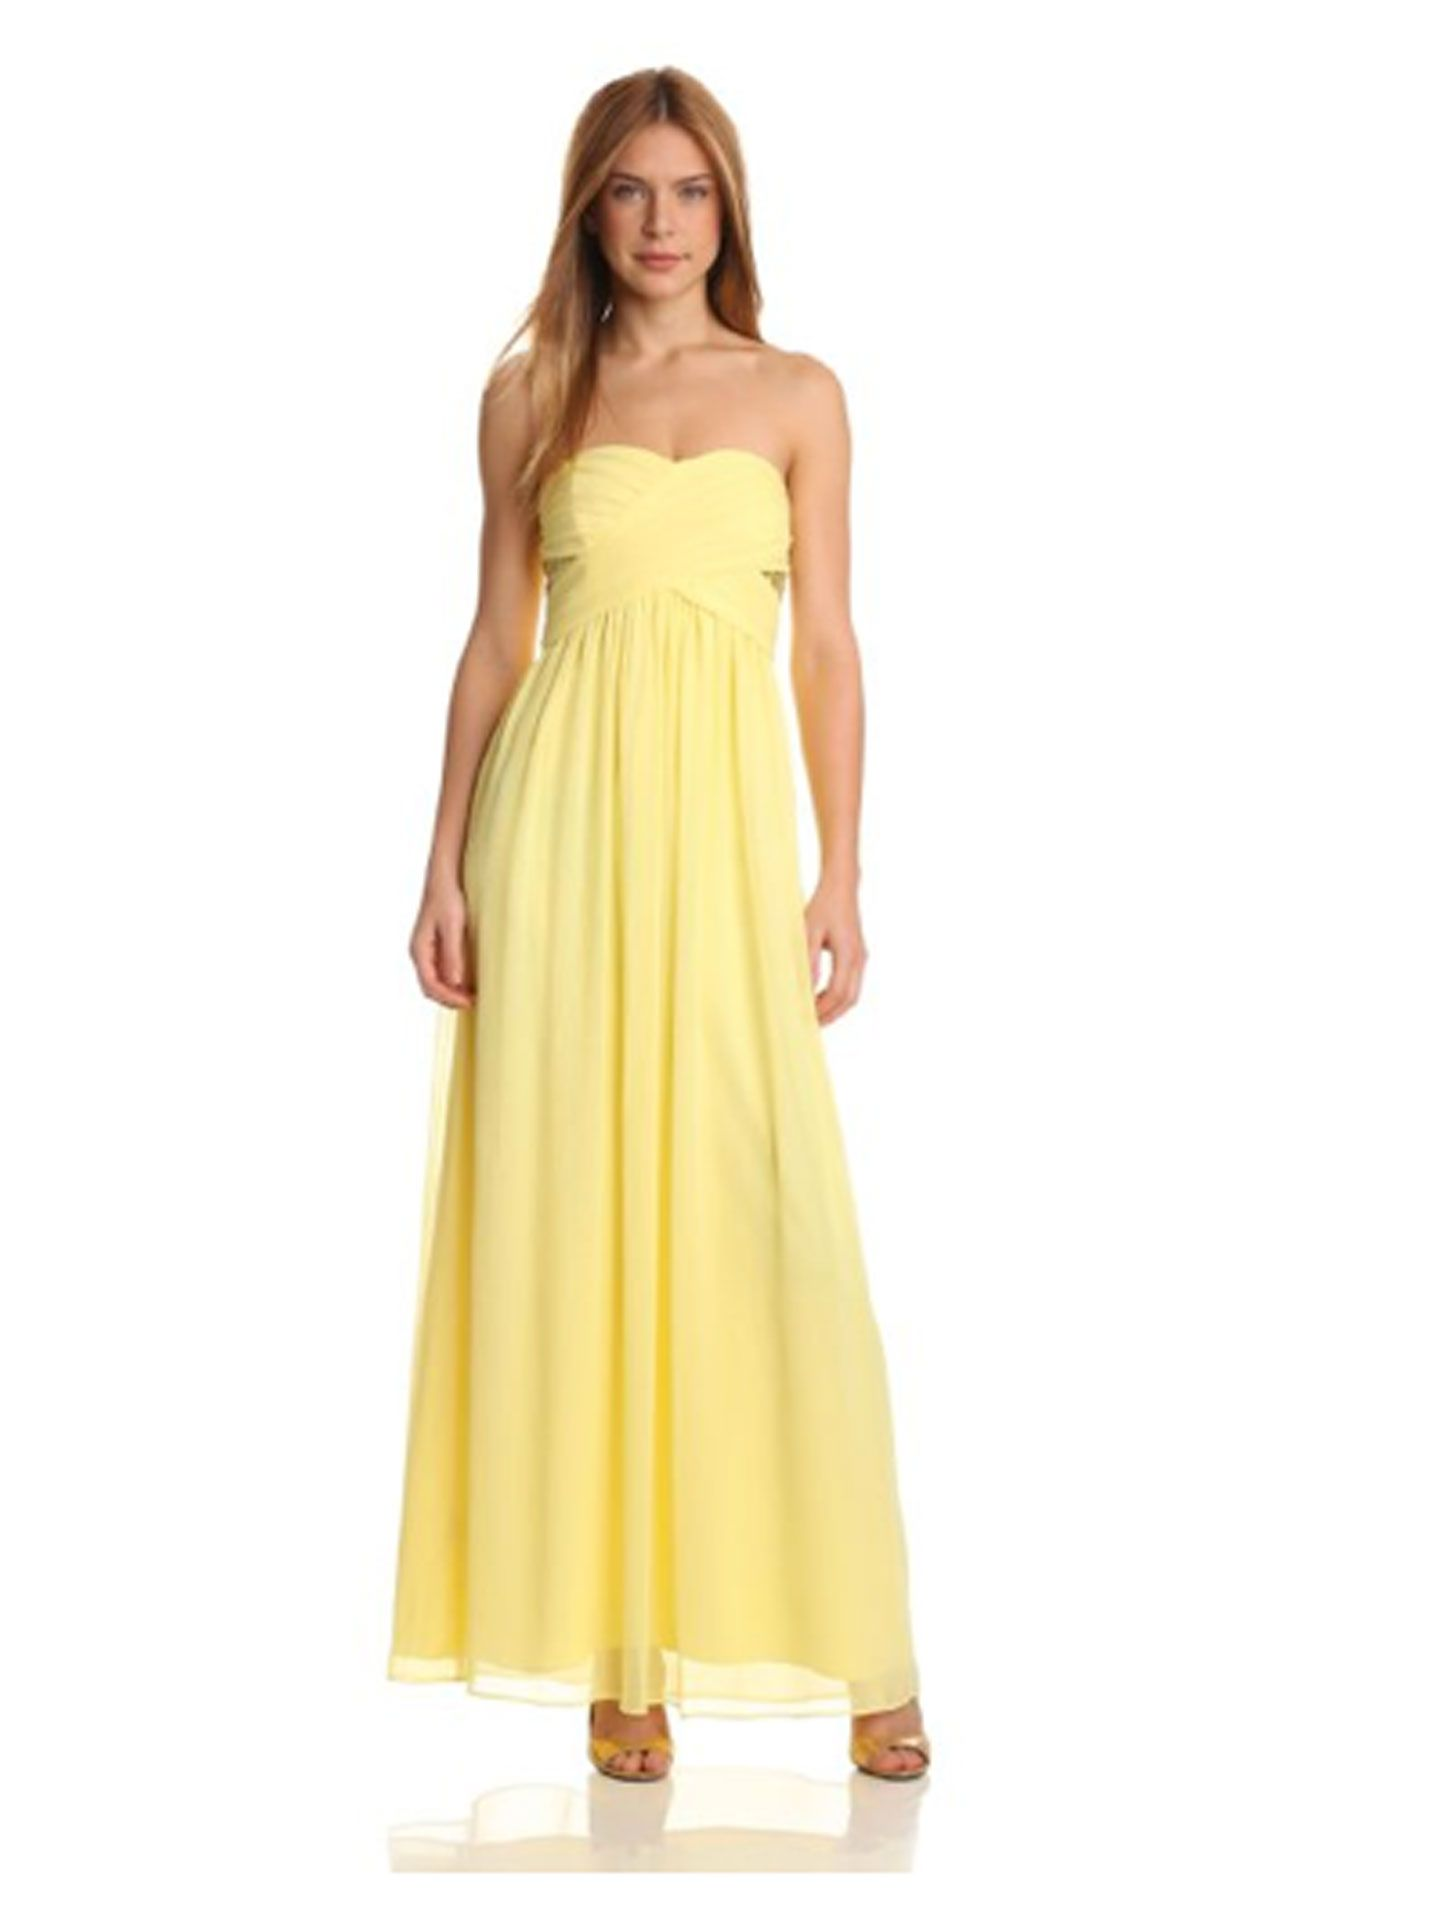 adorable prom dresses you wonut believe cost less than